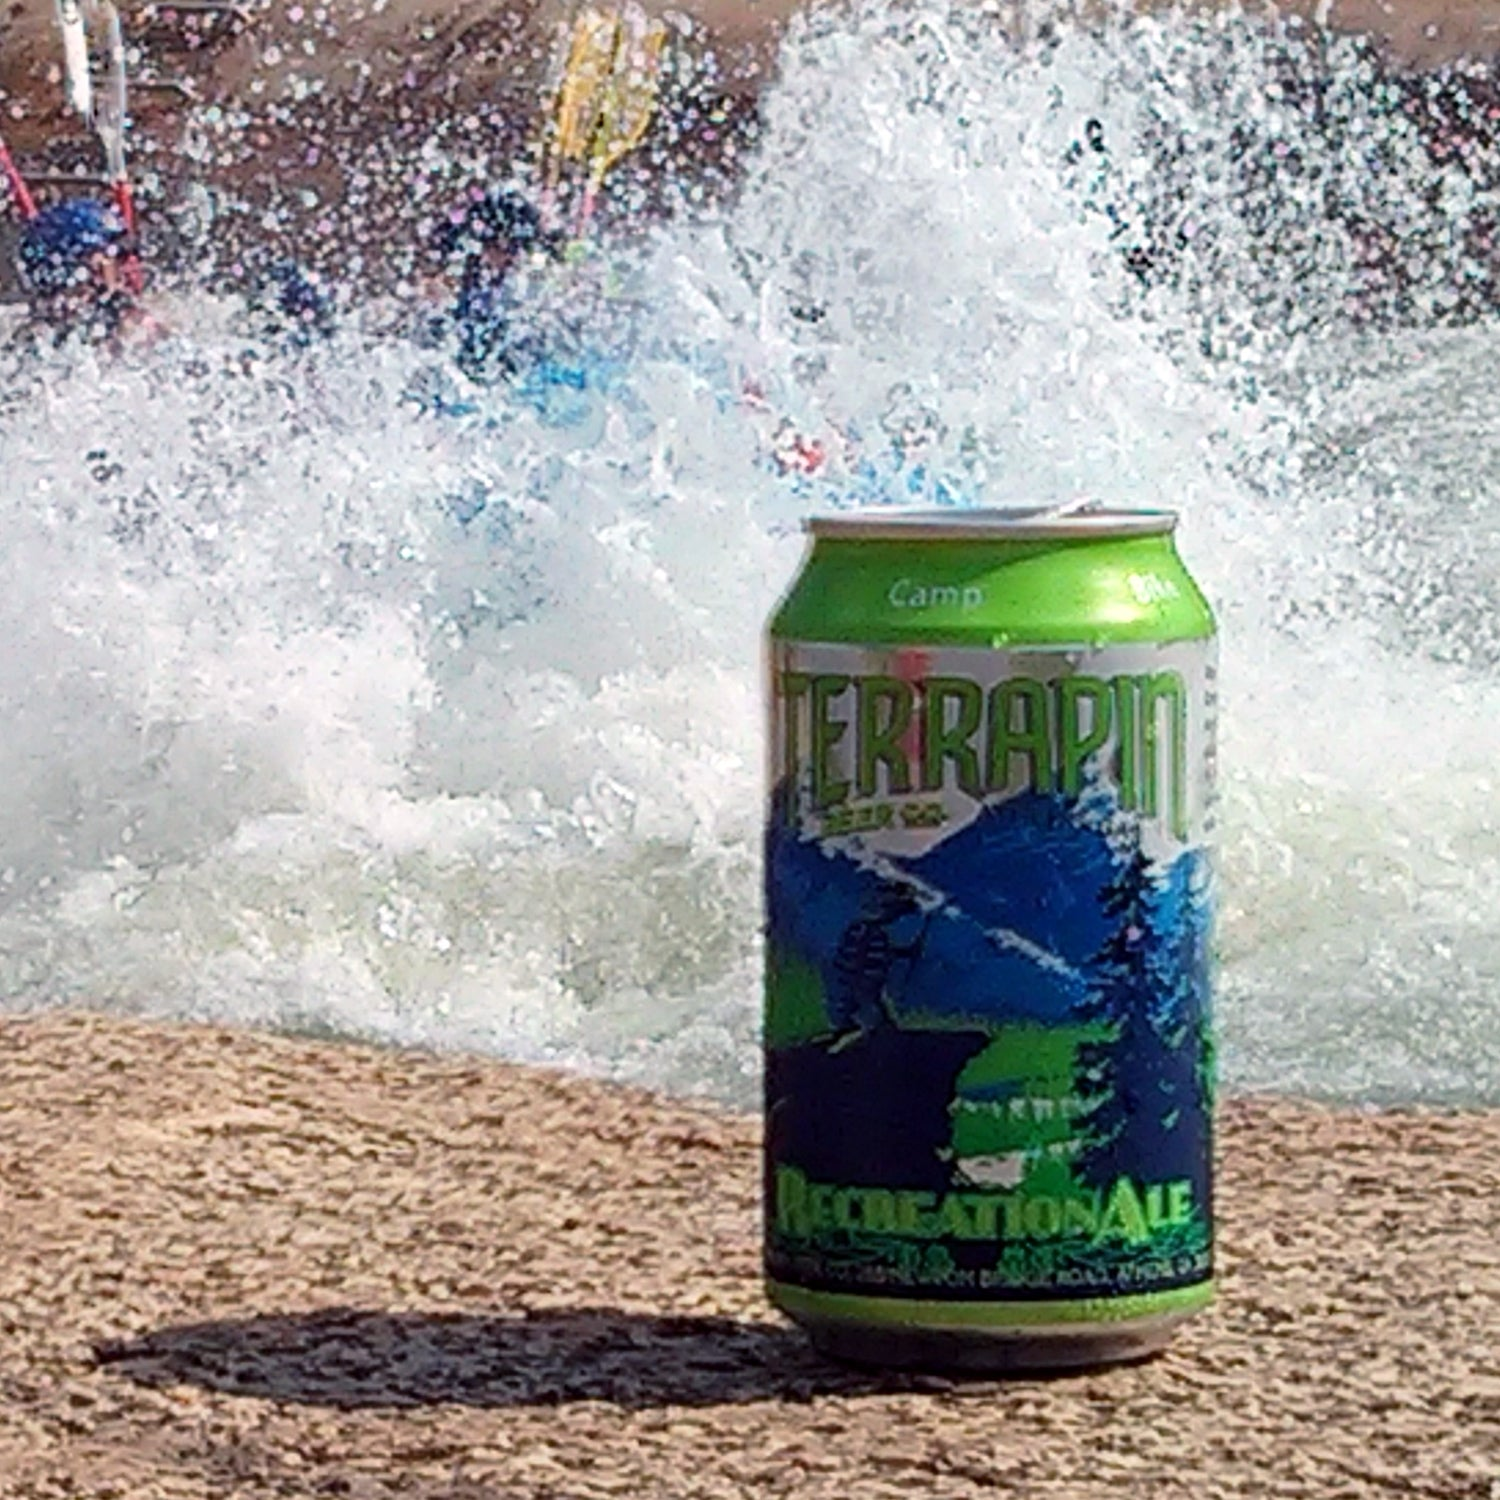 RecreationAle, terrapin beer company, canned beers, outside